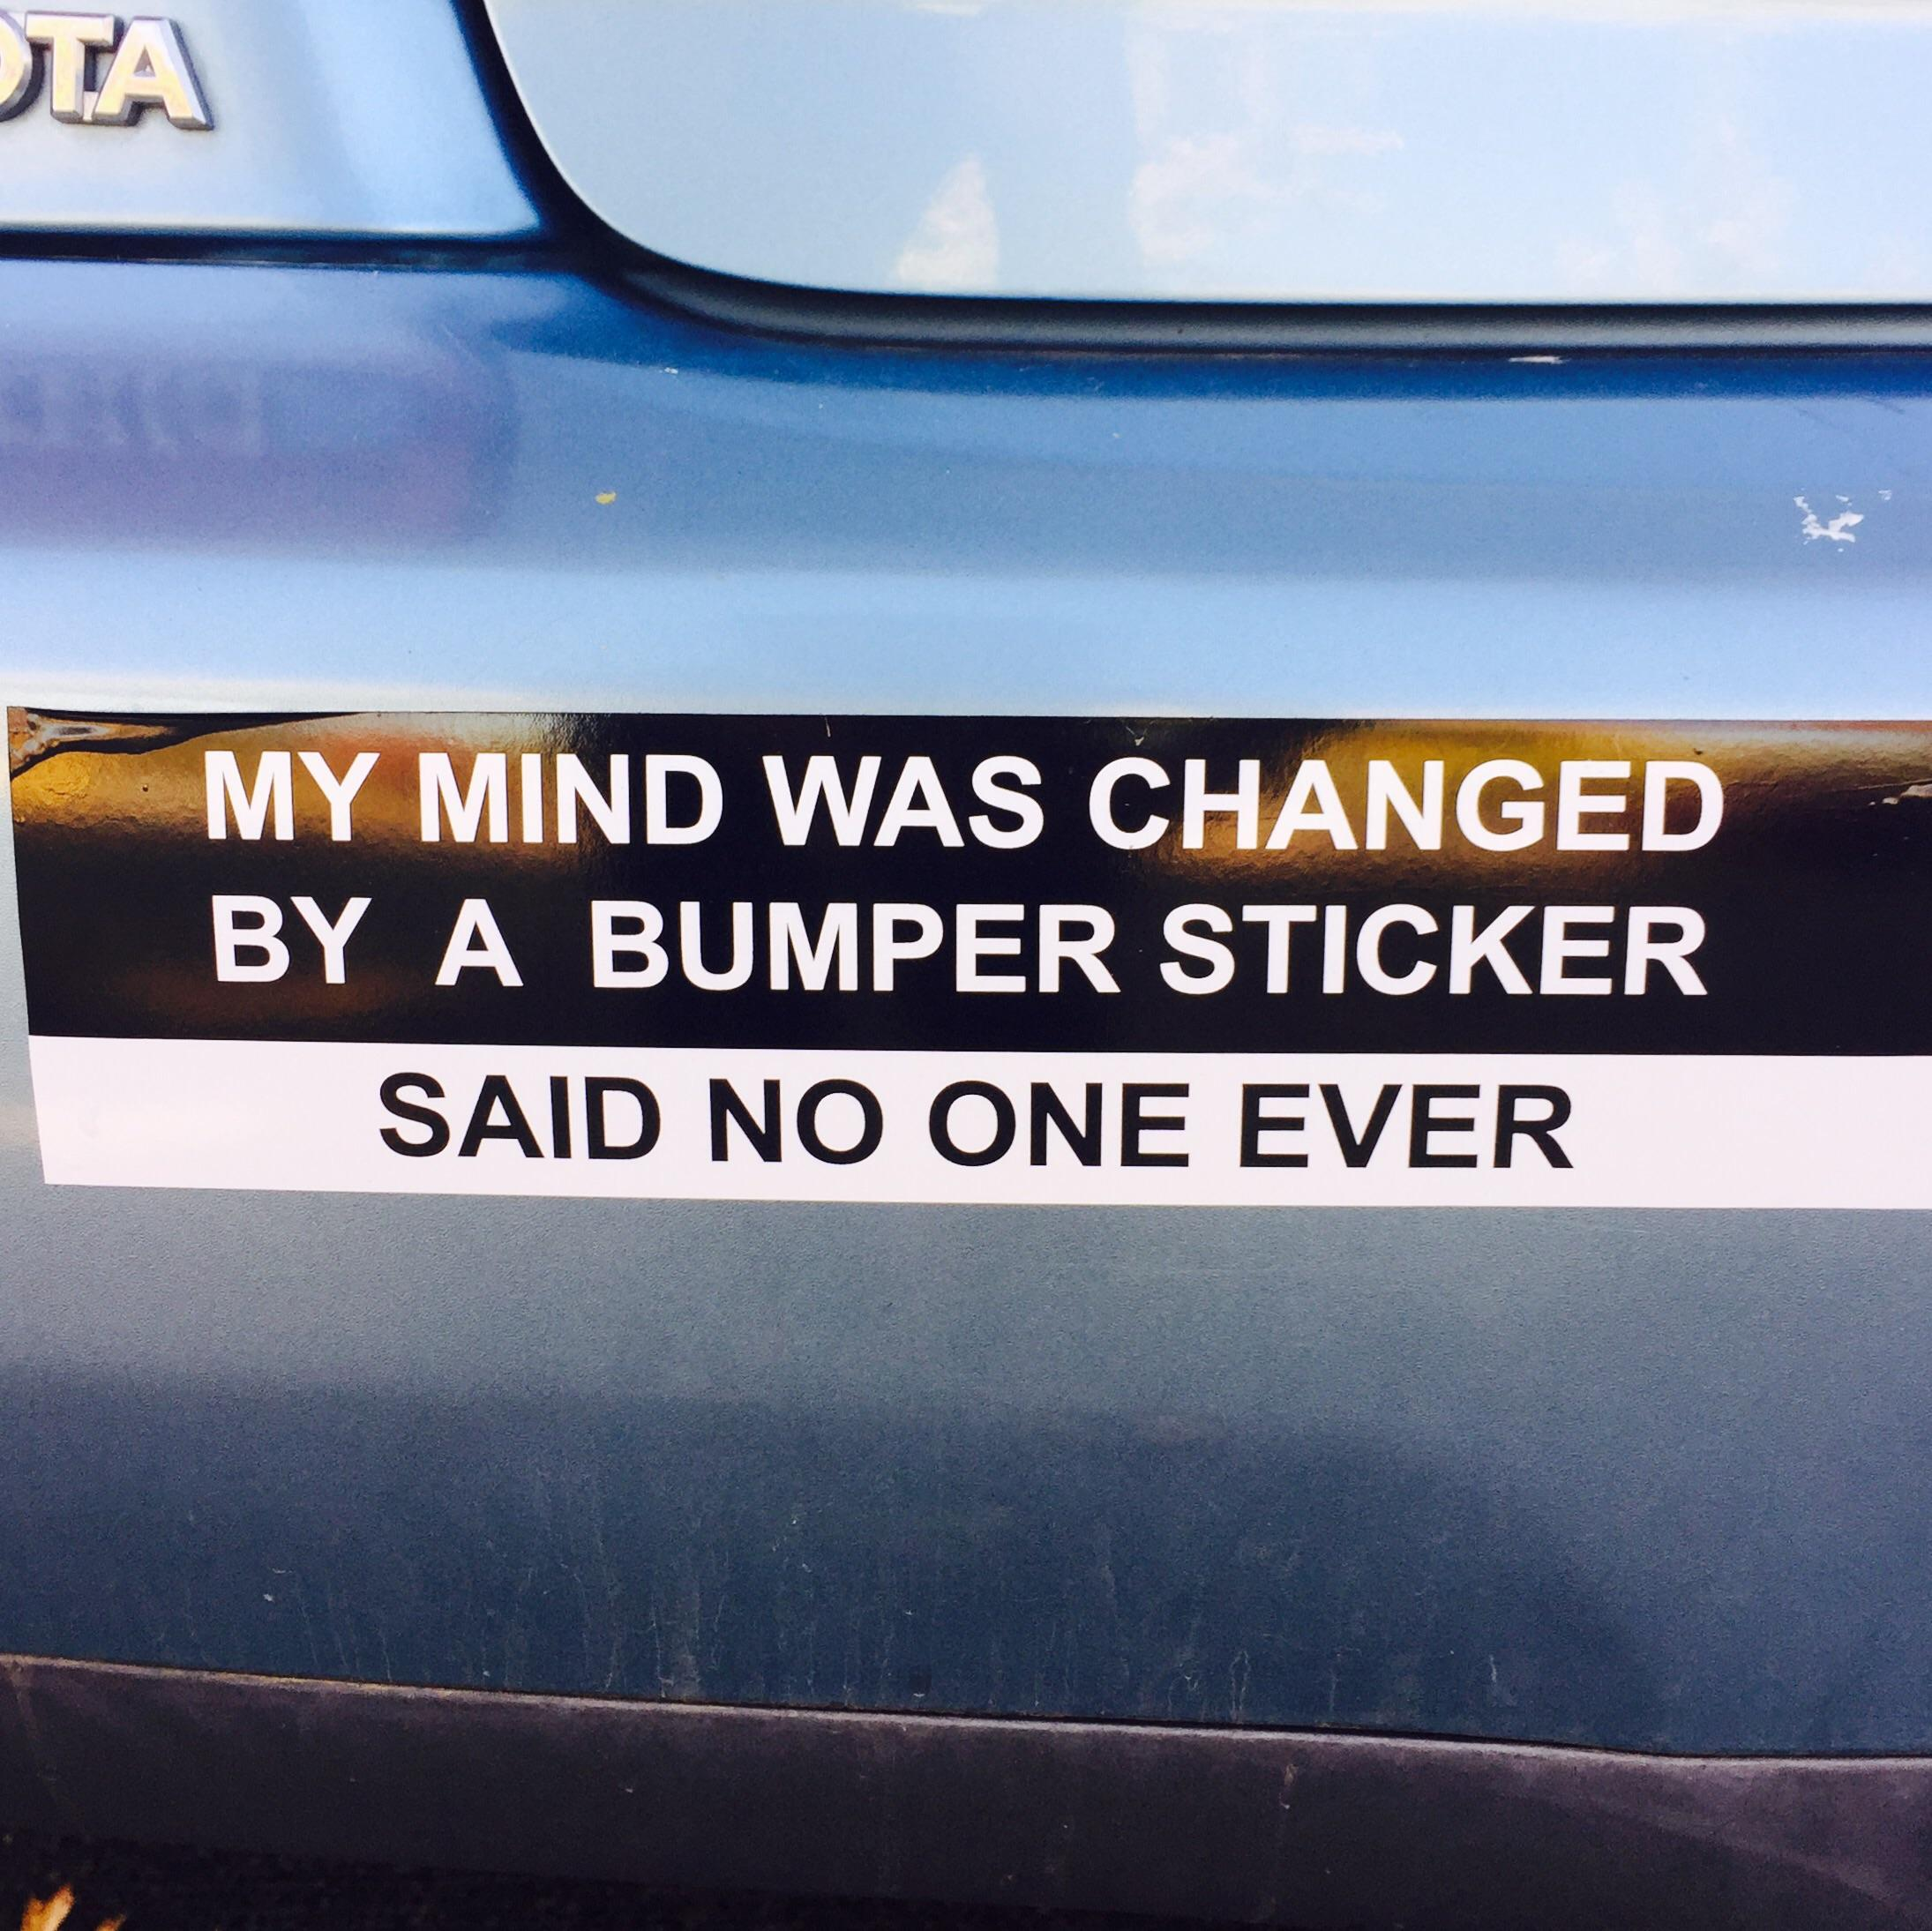 Great now we have a paradox this changes my mind on bumper stickers